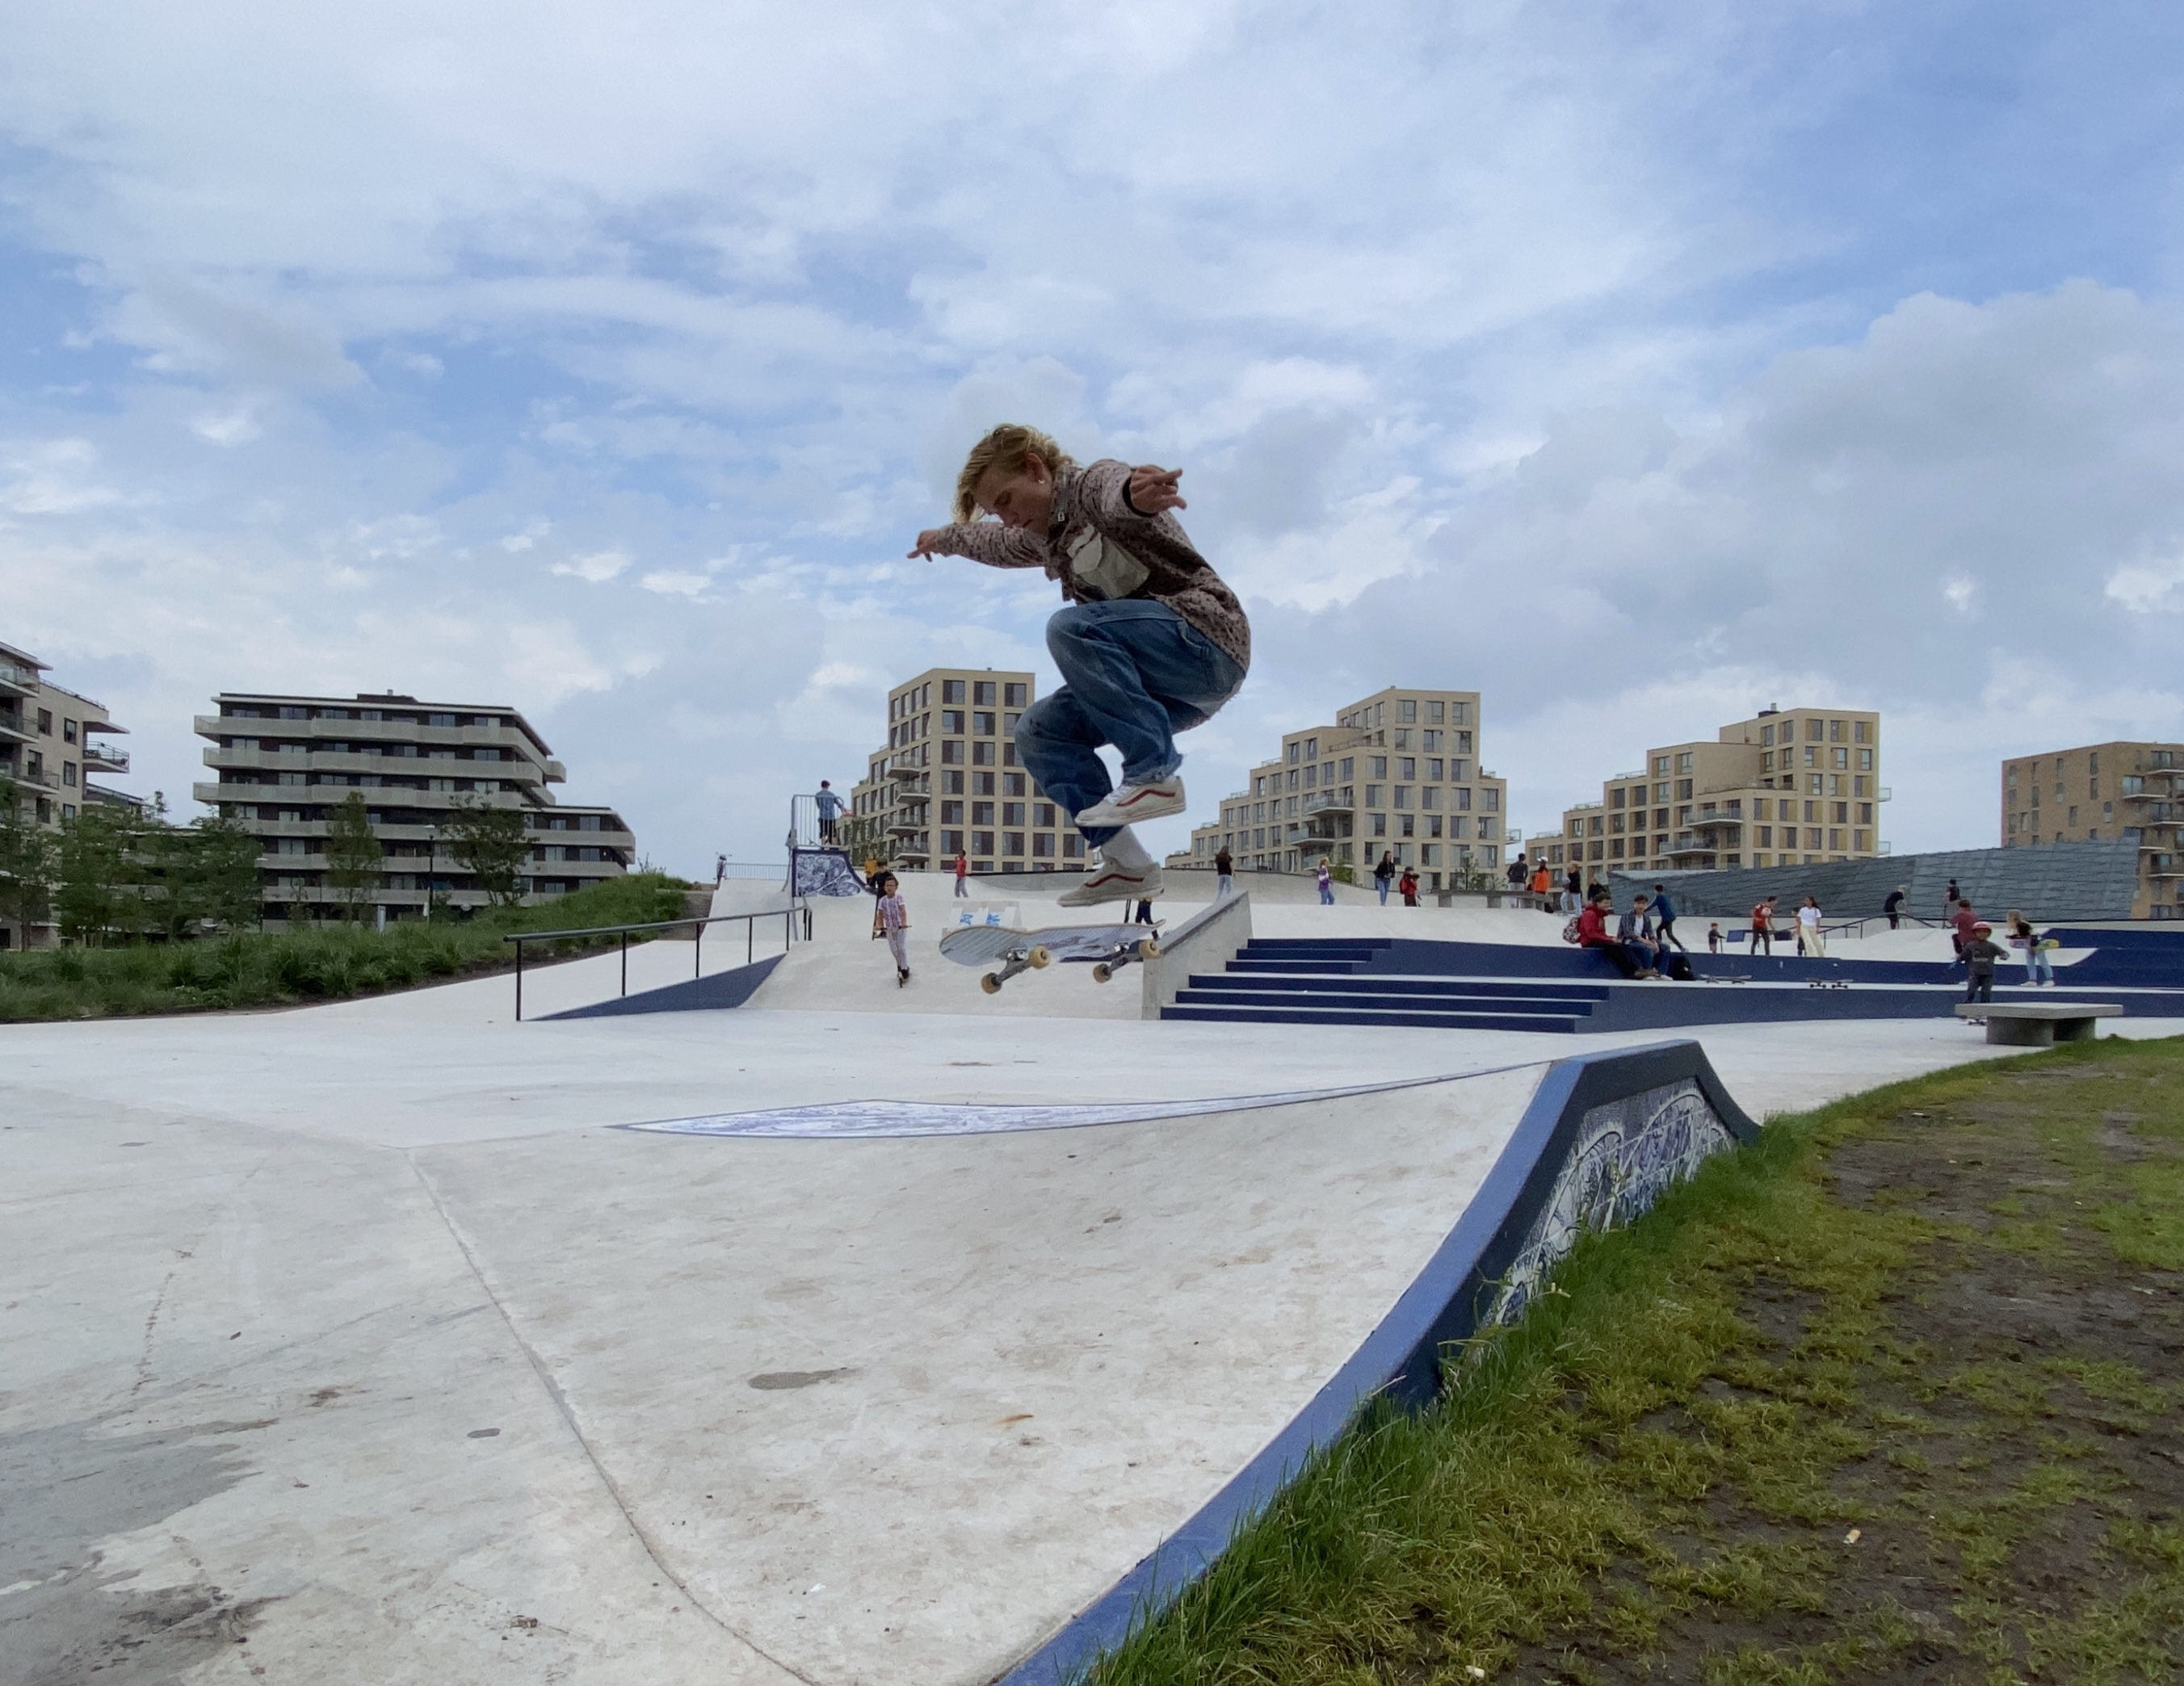 We meet Mads, he kick flips like a mad man.